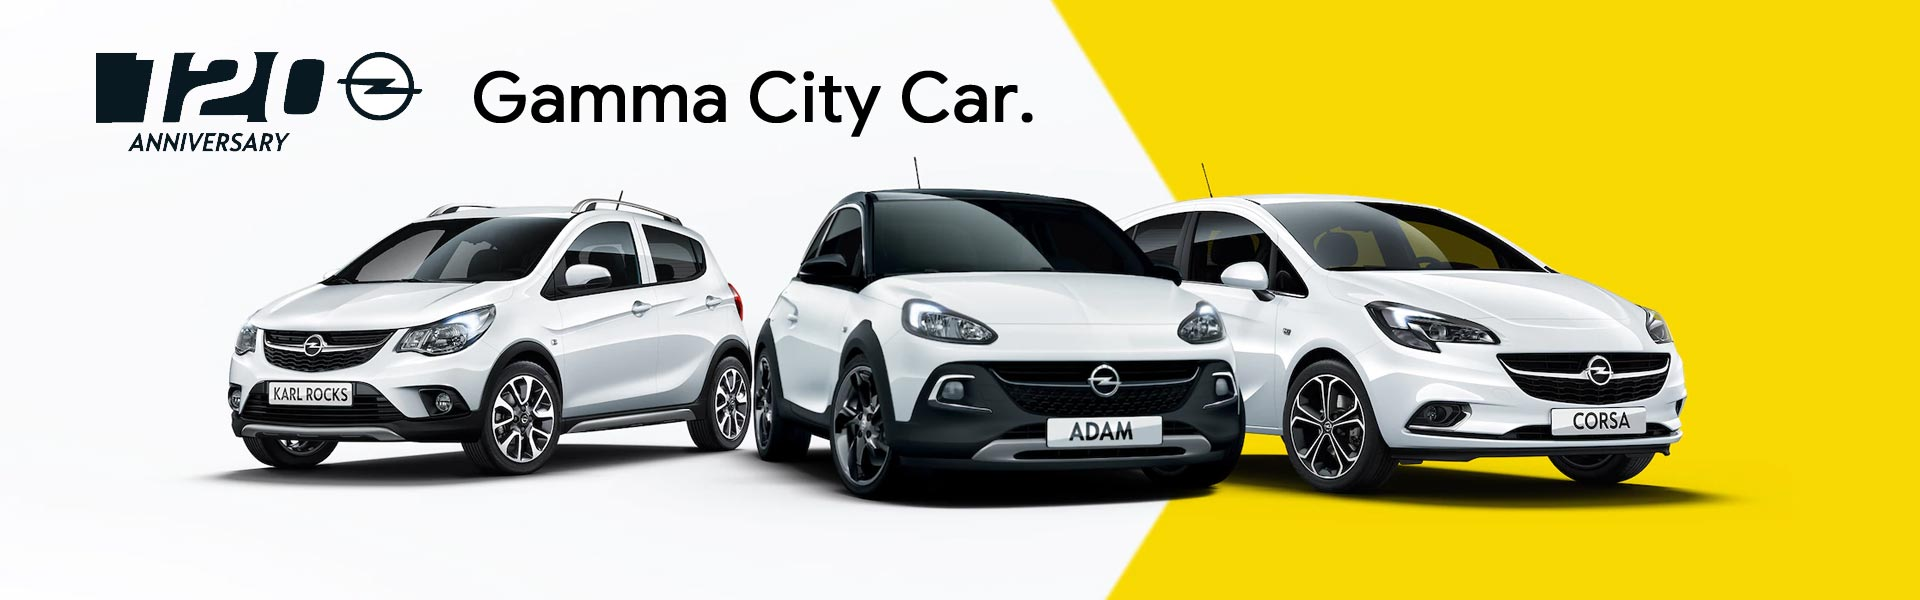 Gamma City Car Opel